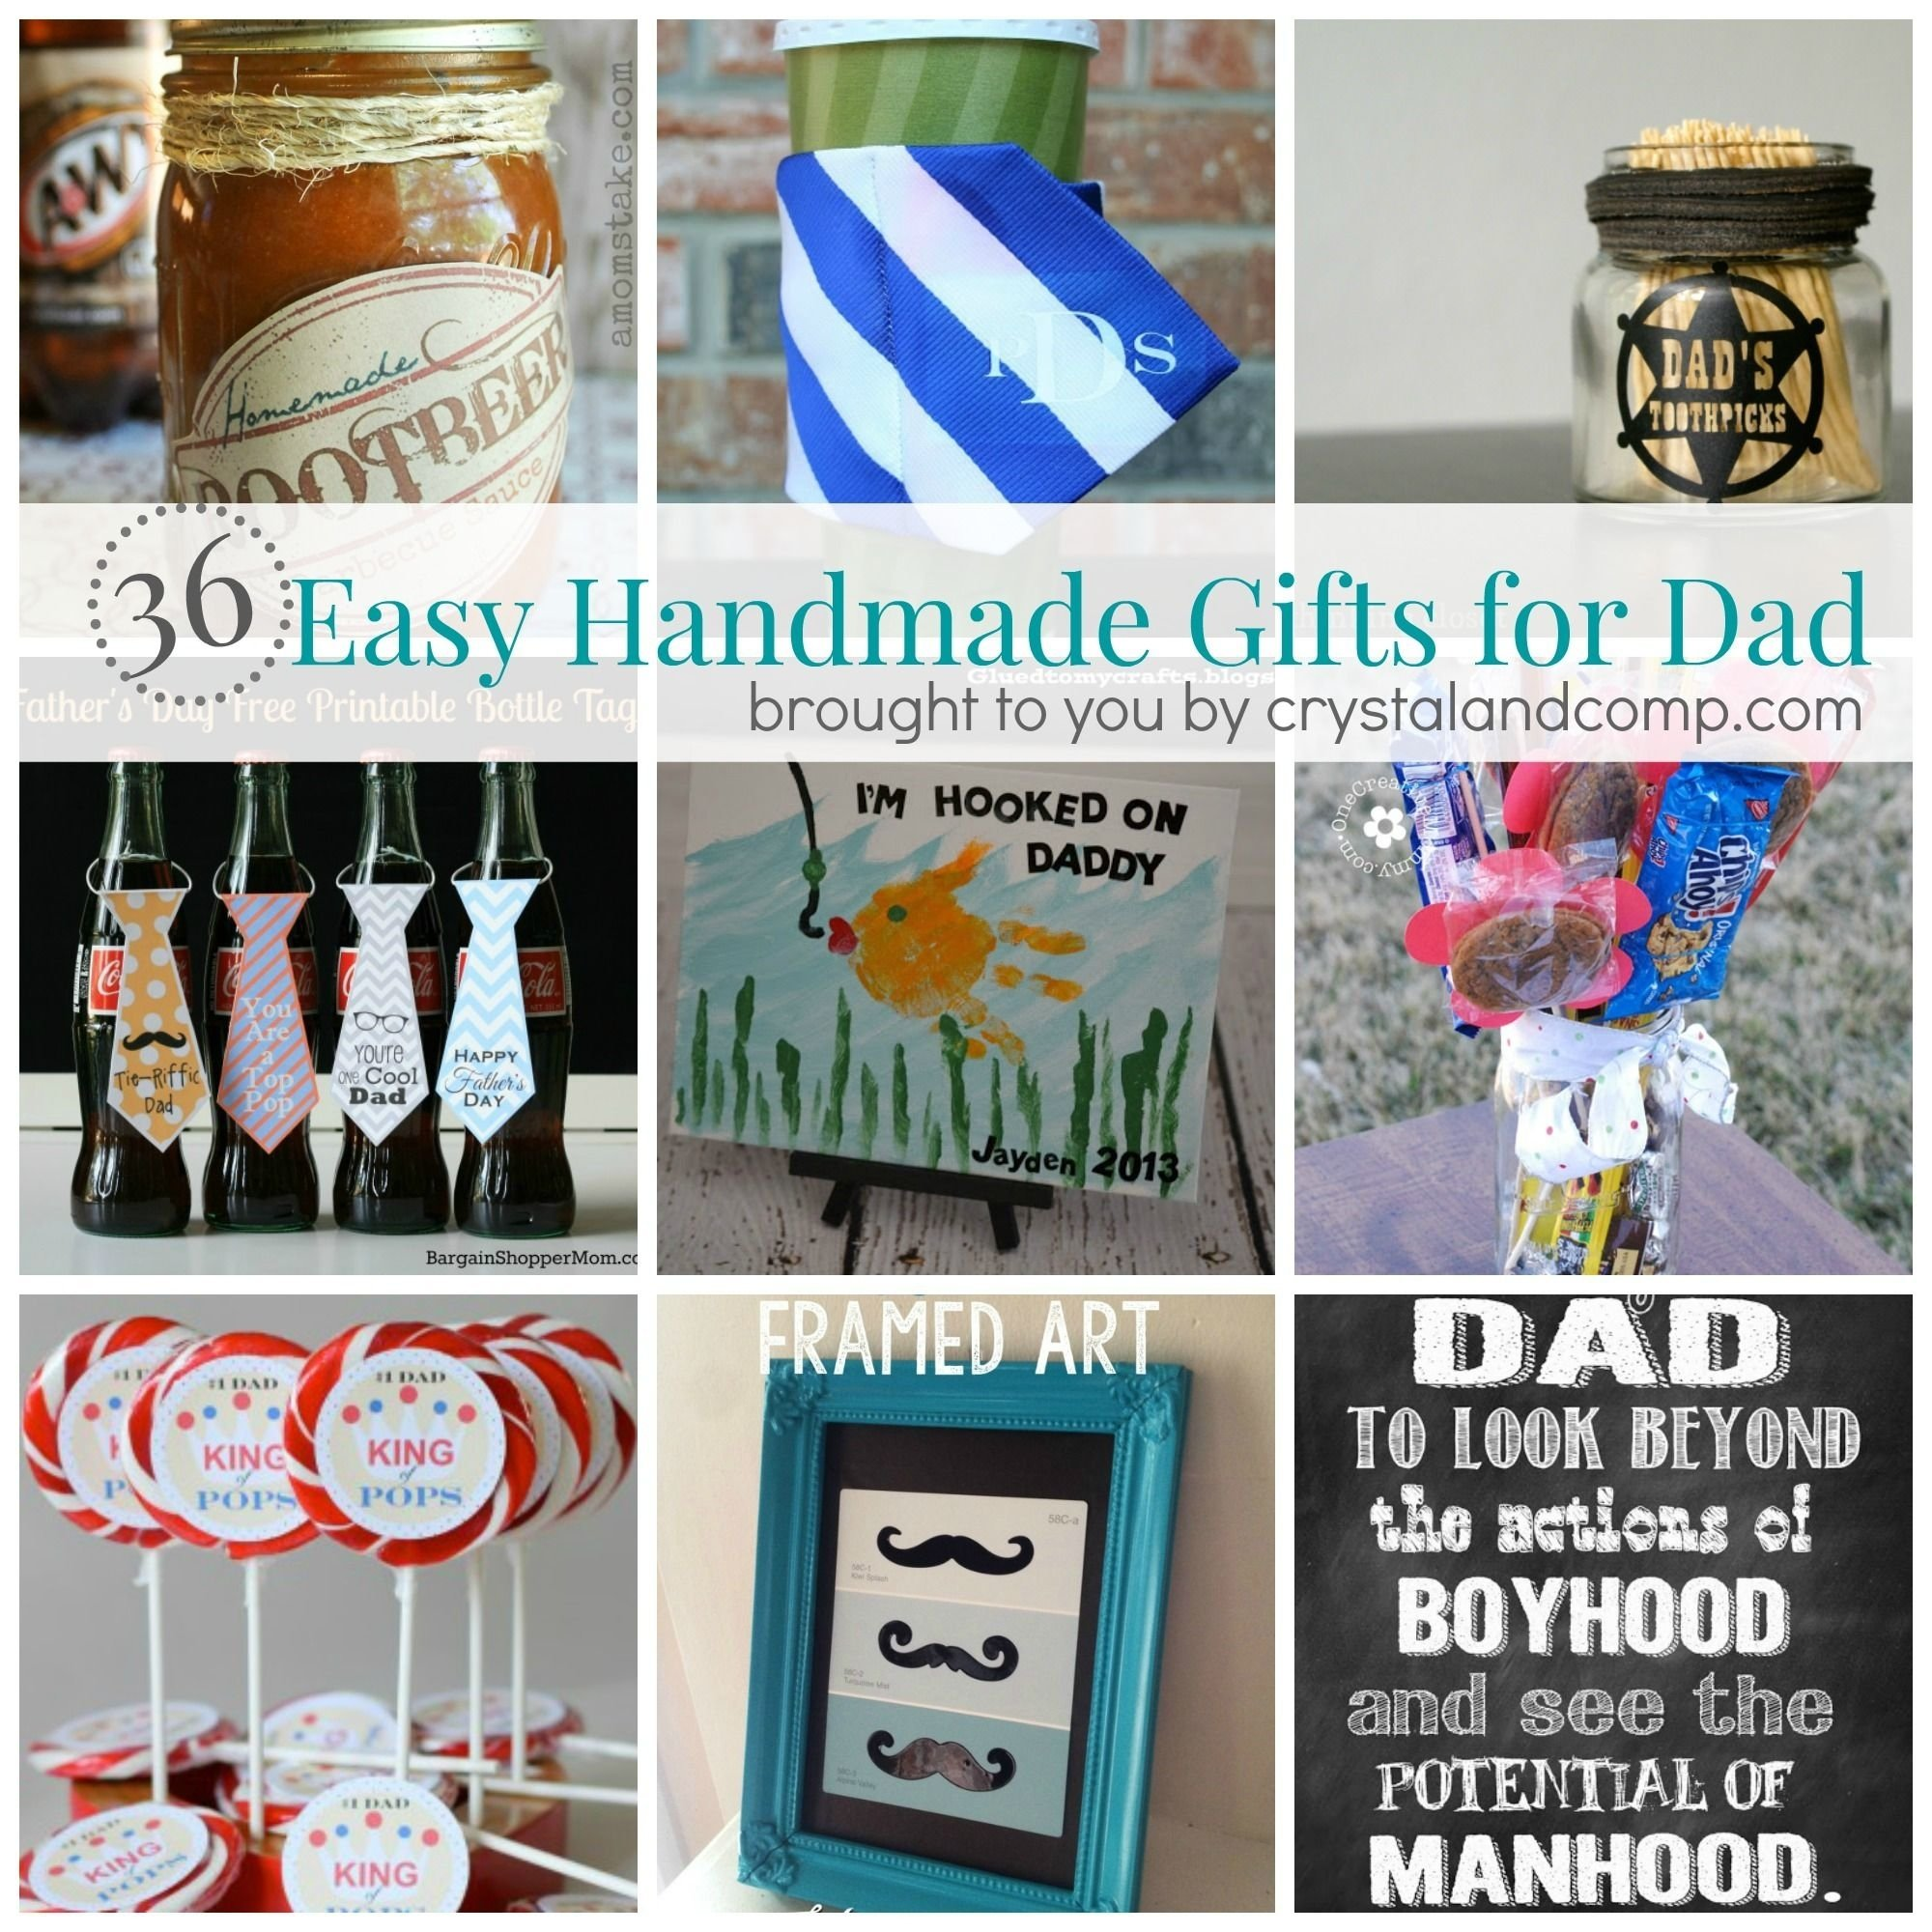 10 Great Gift Idea For Dad Who Has Everything 36 easy handmade gift ideas for dad easy homemade gifts dads and 1 2020